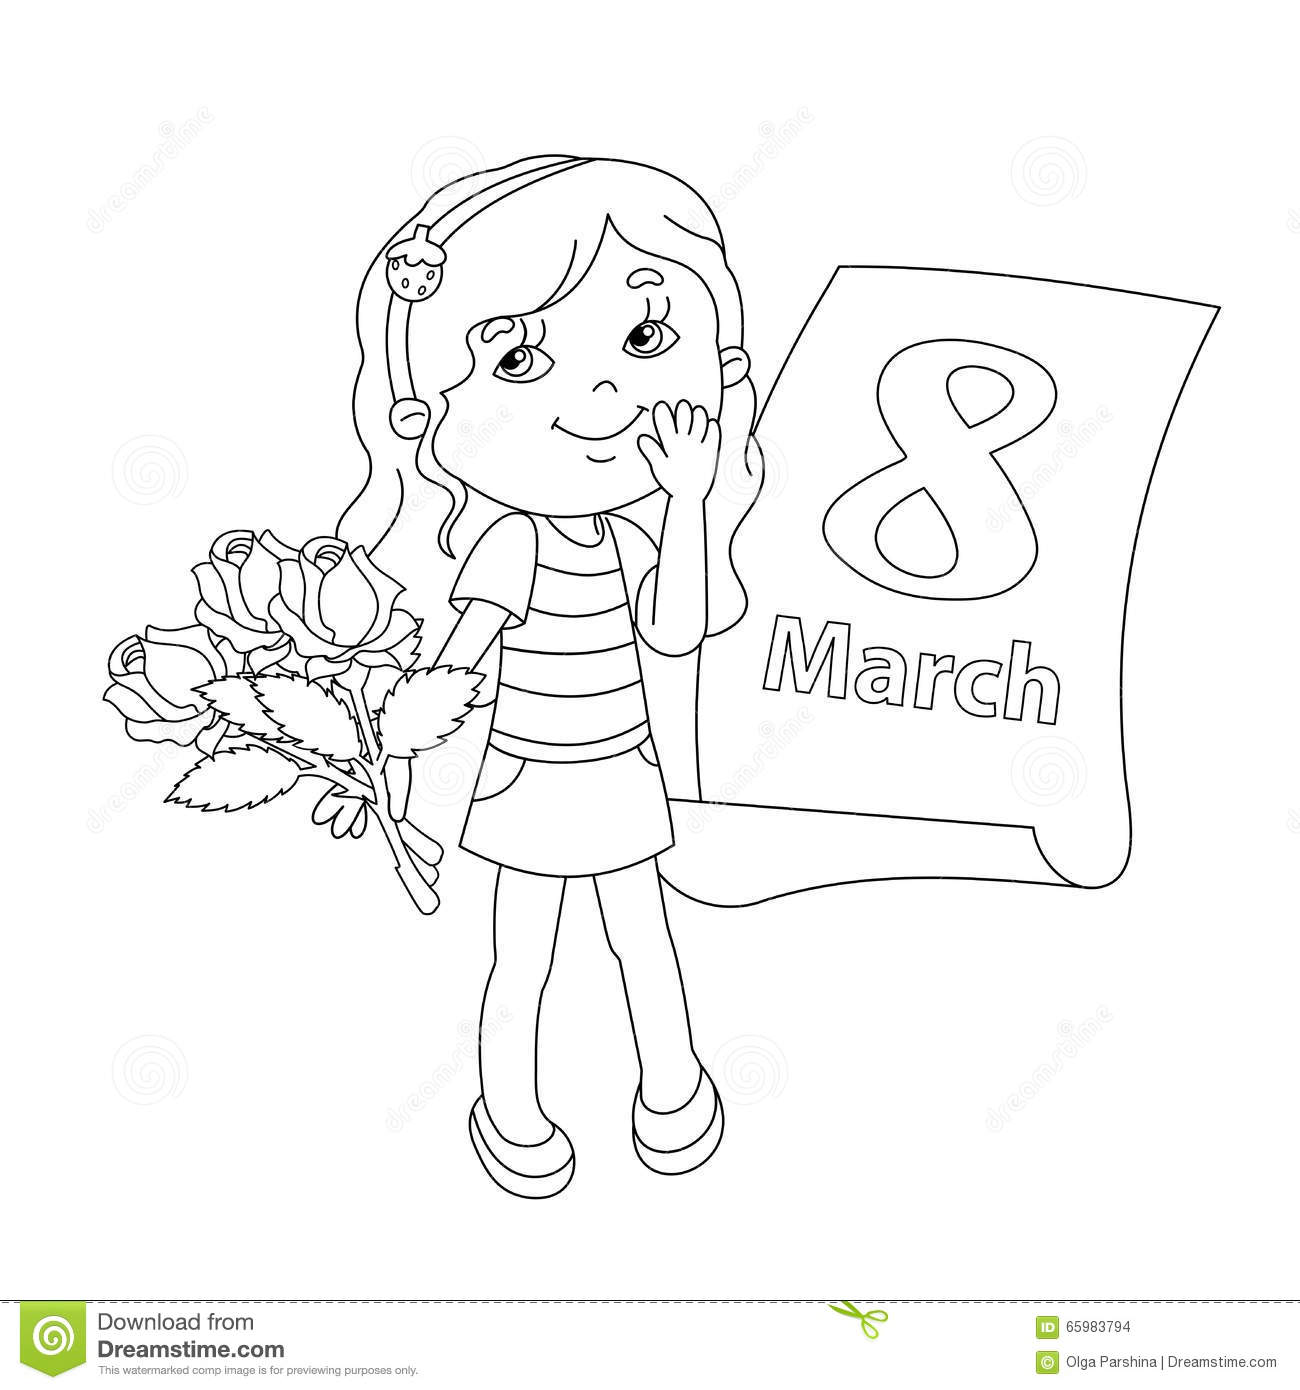 Coloring Page Outline Of Girl With Flowers March 8 Stock